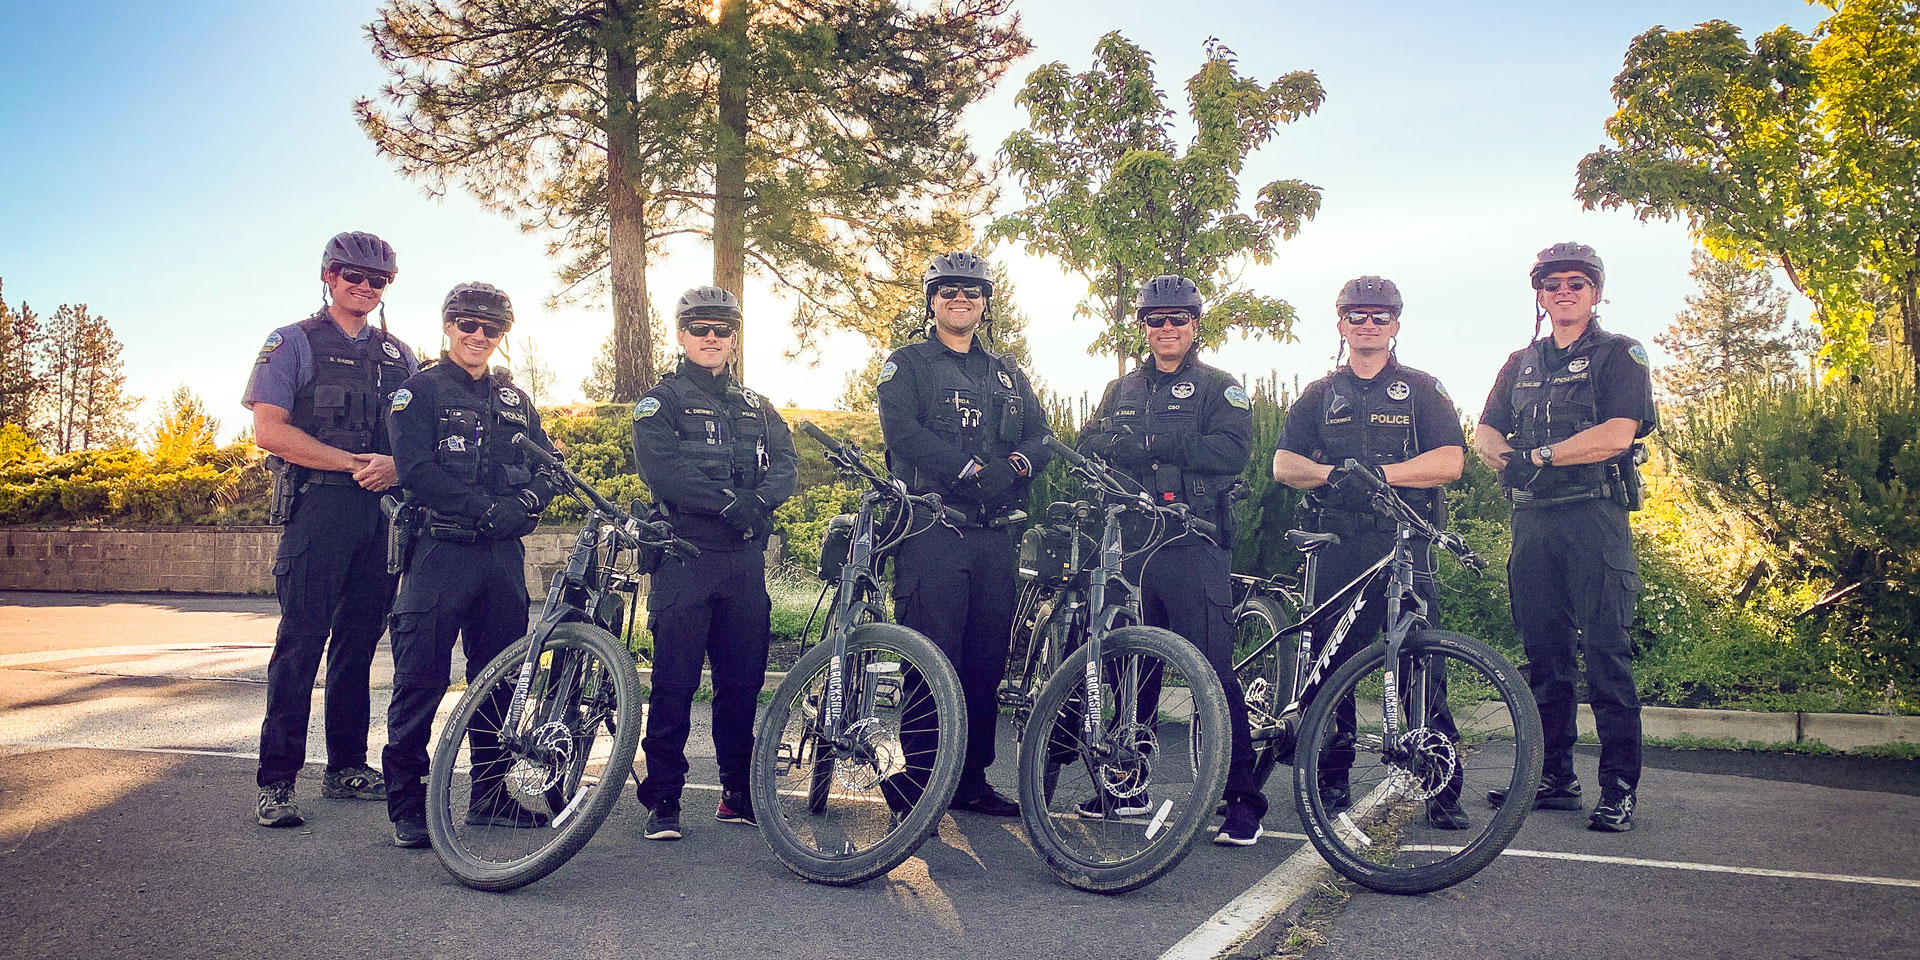 Bend Police Department electric bike team.